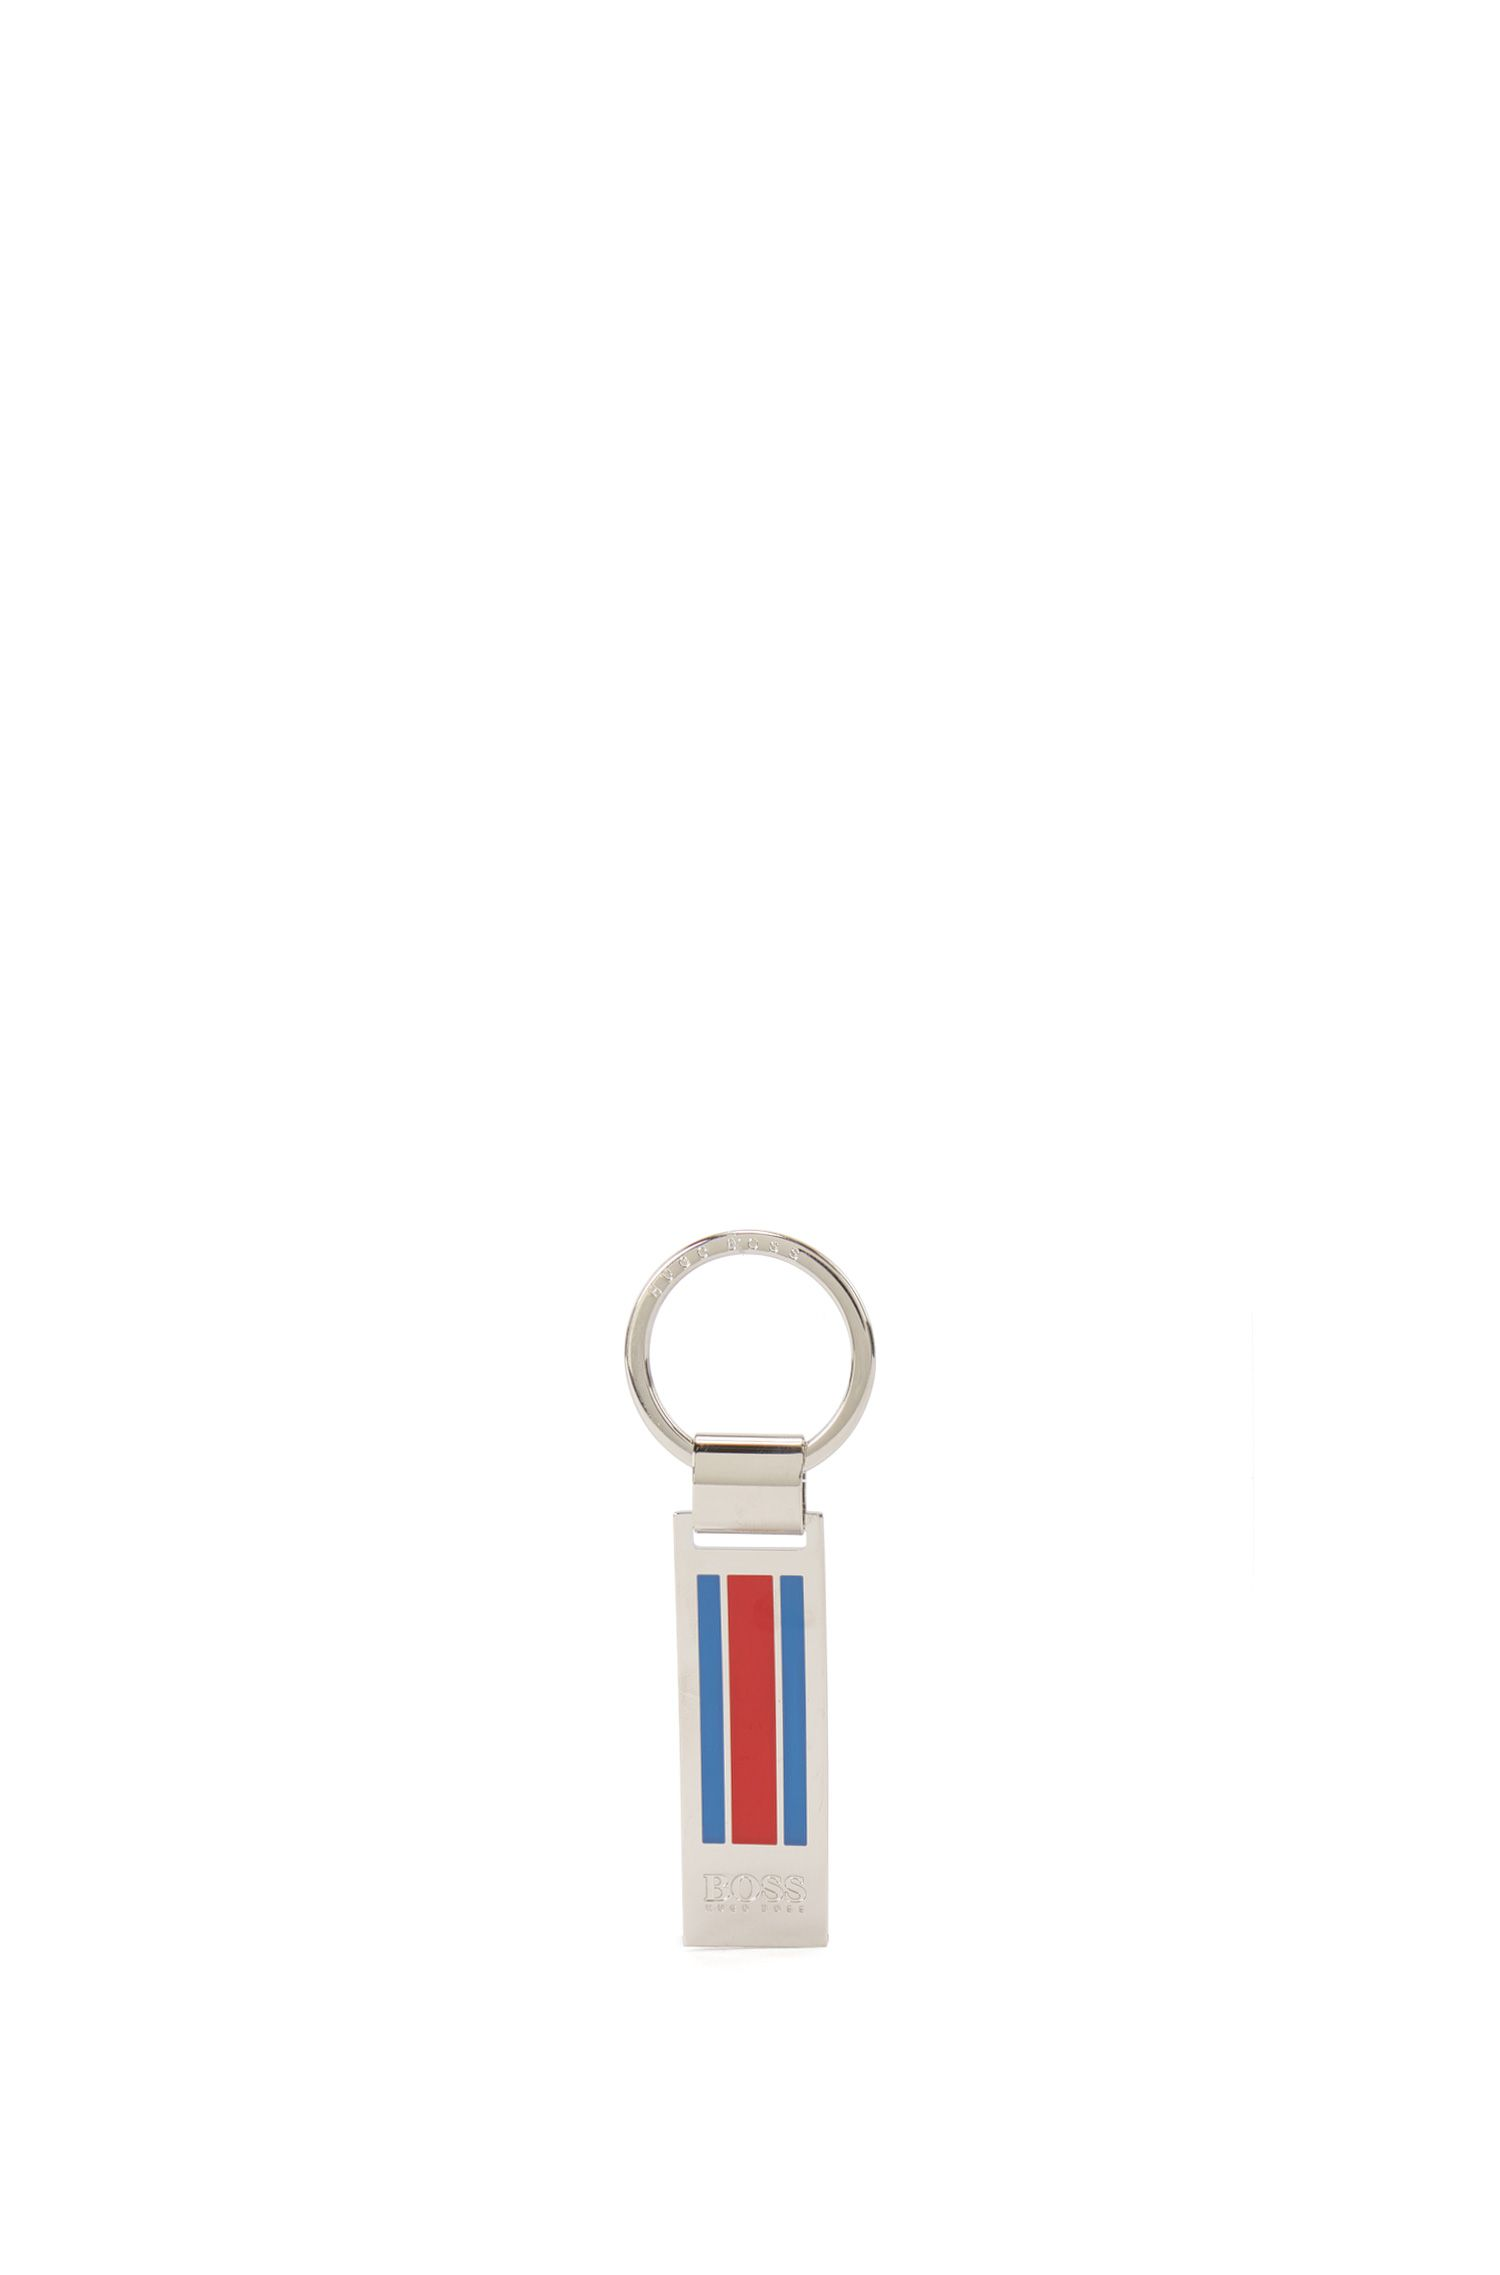 Enamel & Steel Key Fob | Timeless Key Holder